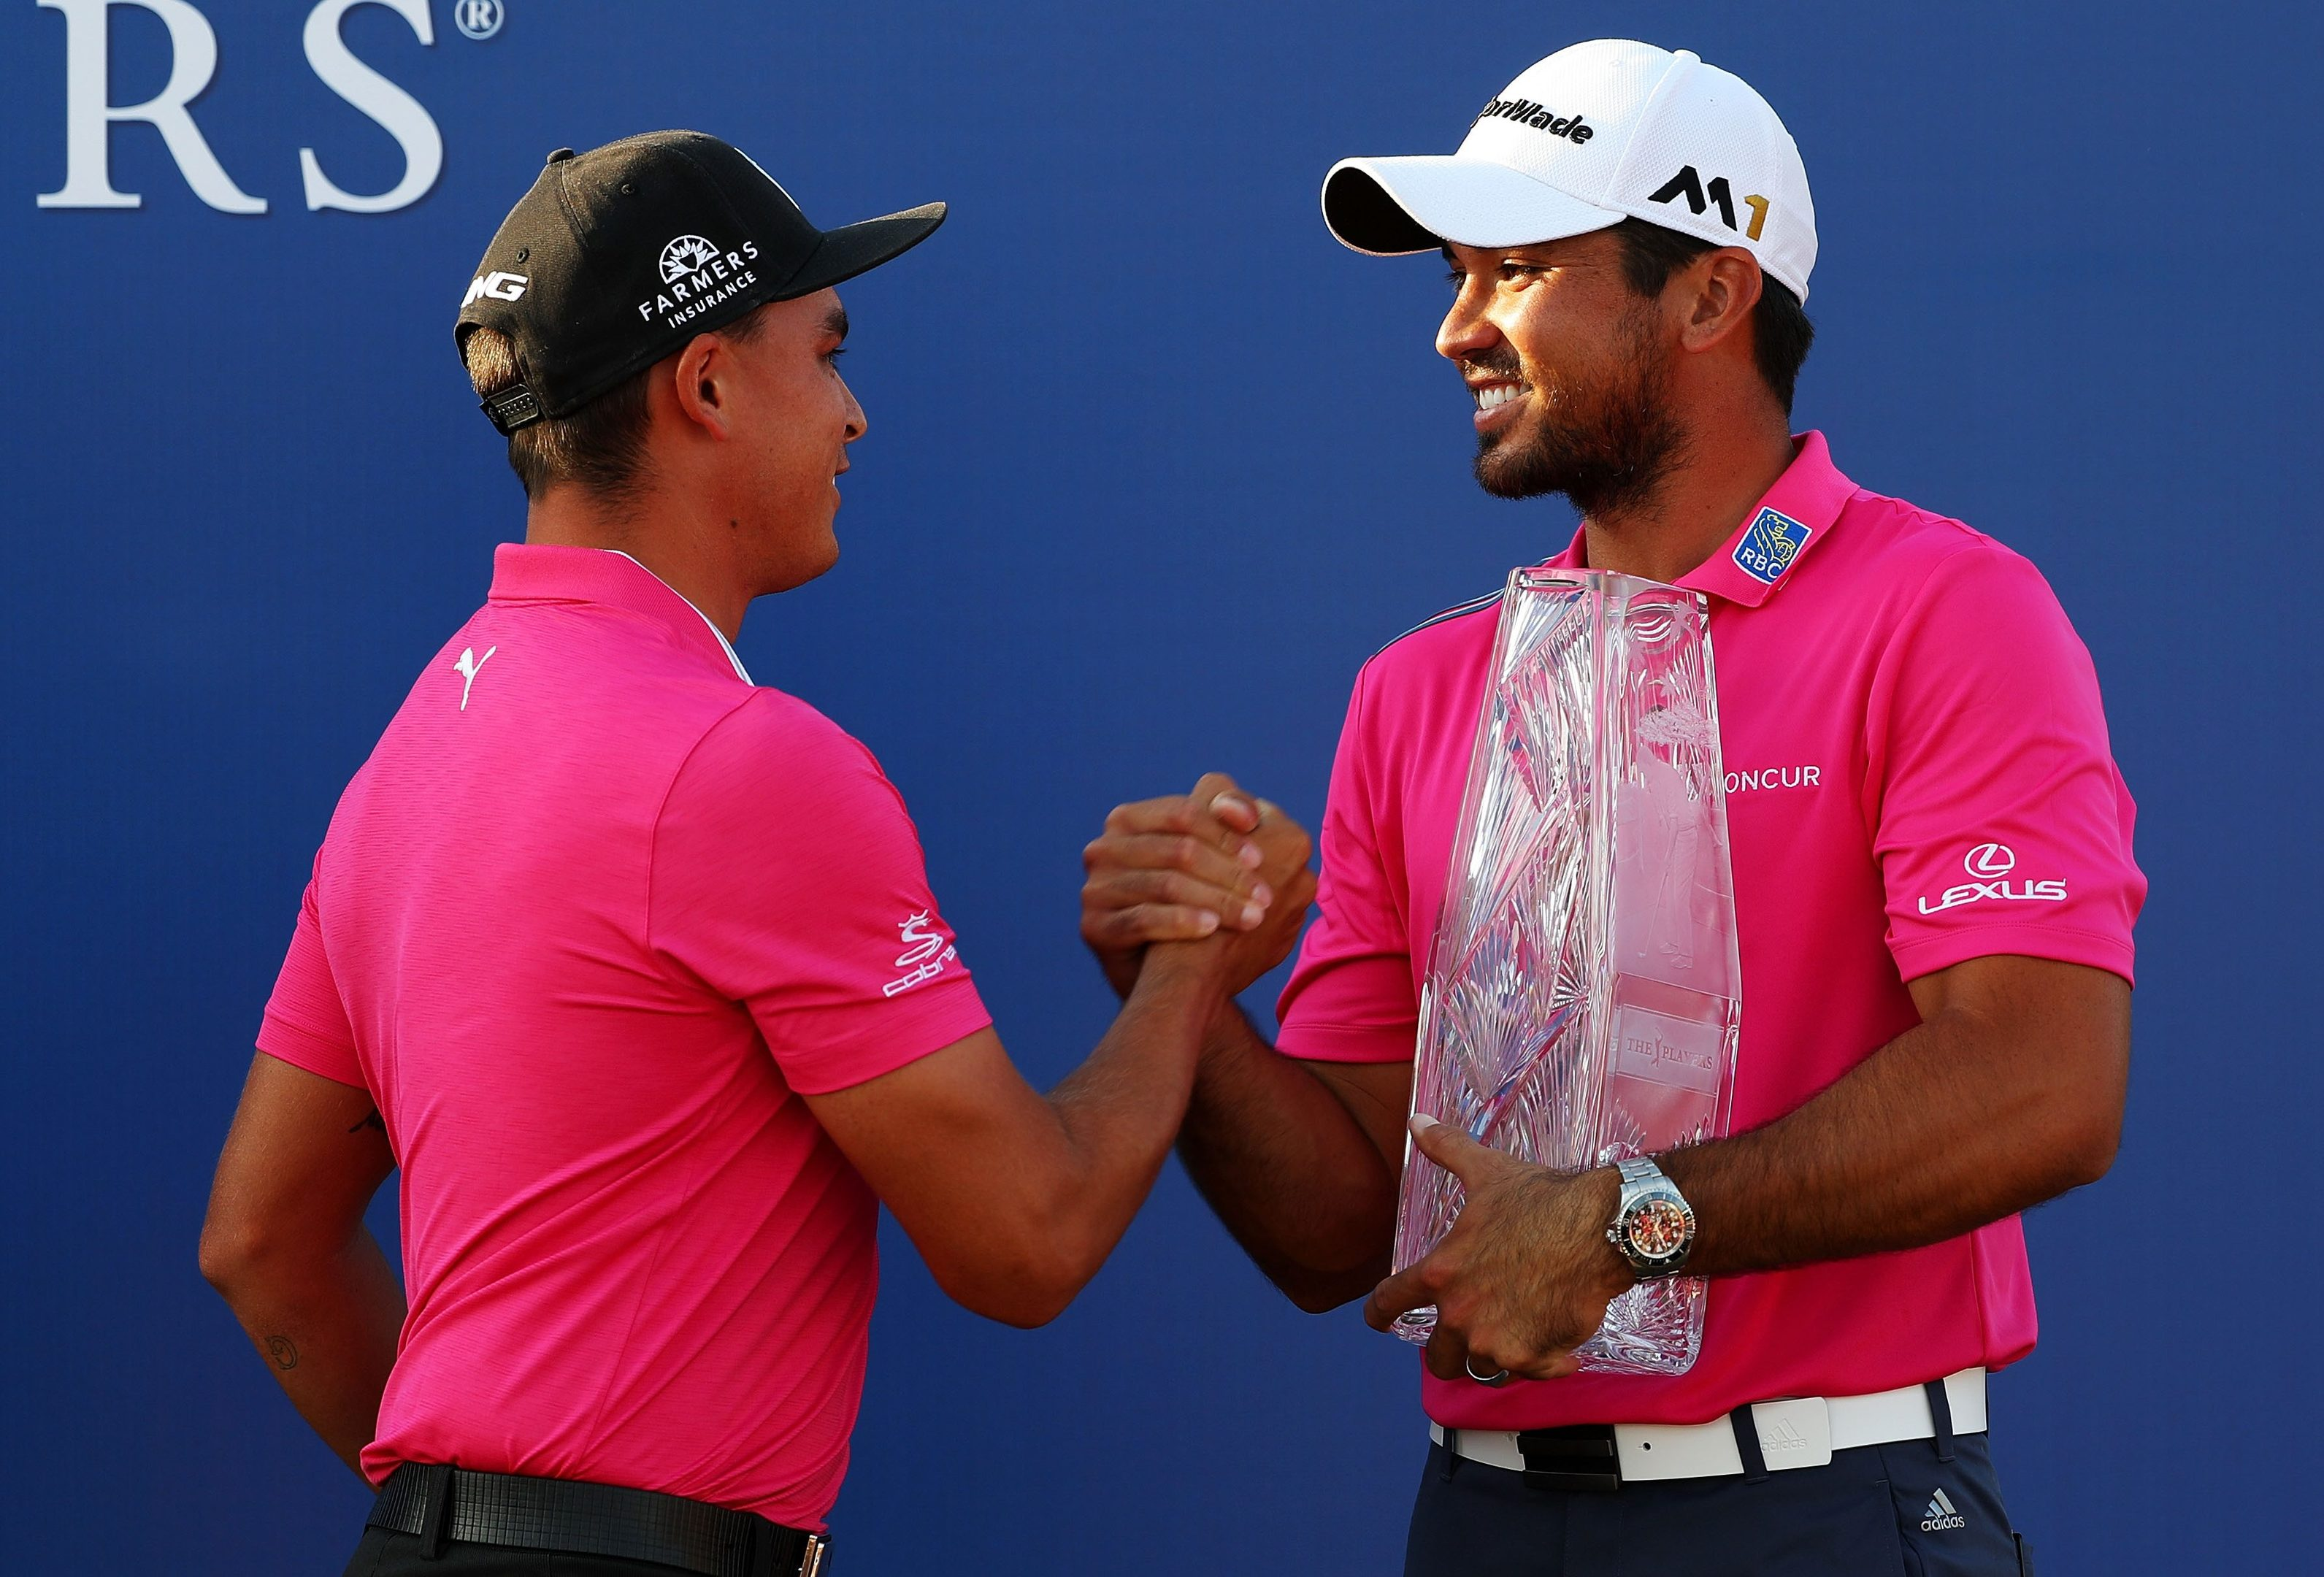 Last year's winner Rickie Fowler (left) presents the trophy to Jason Day.